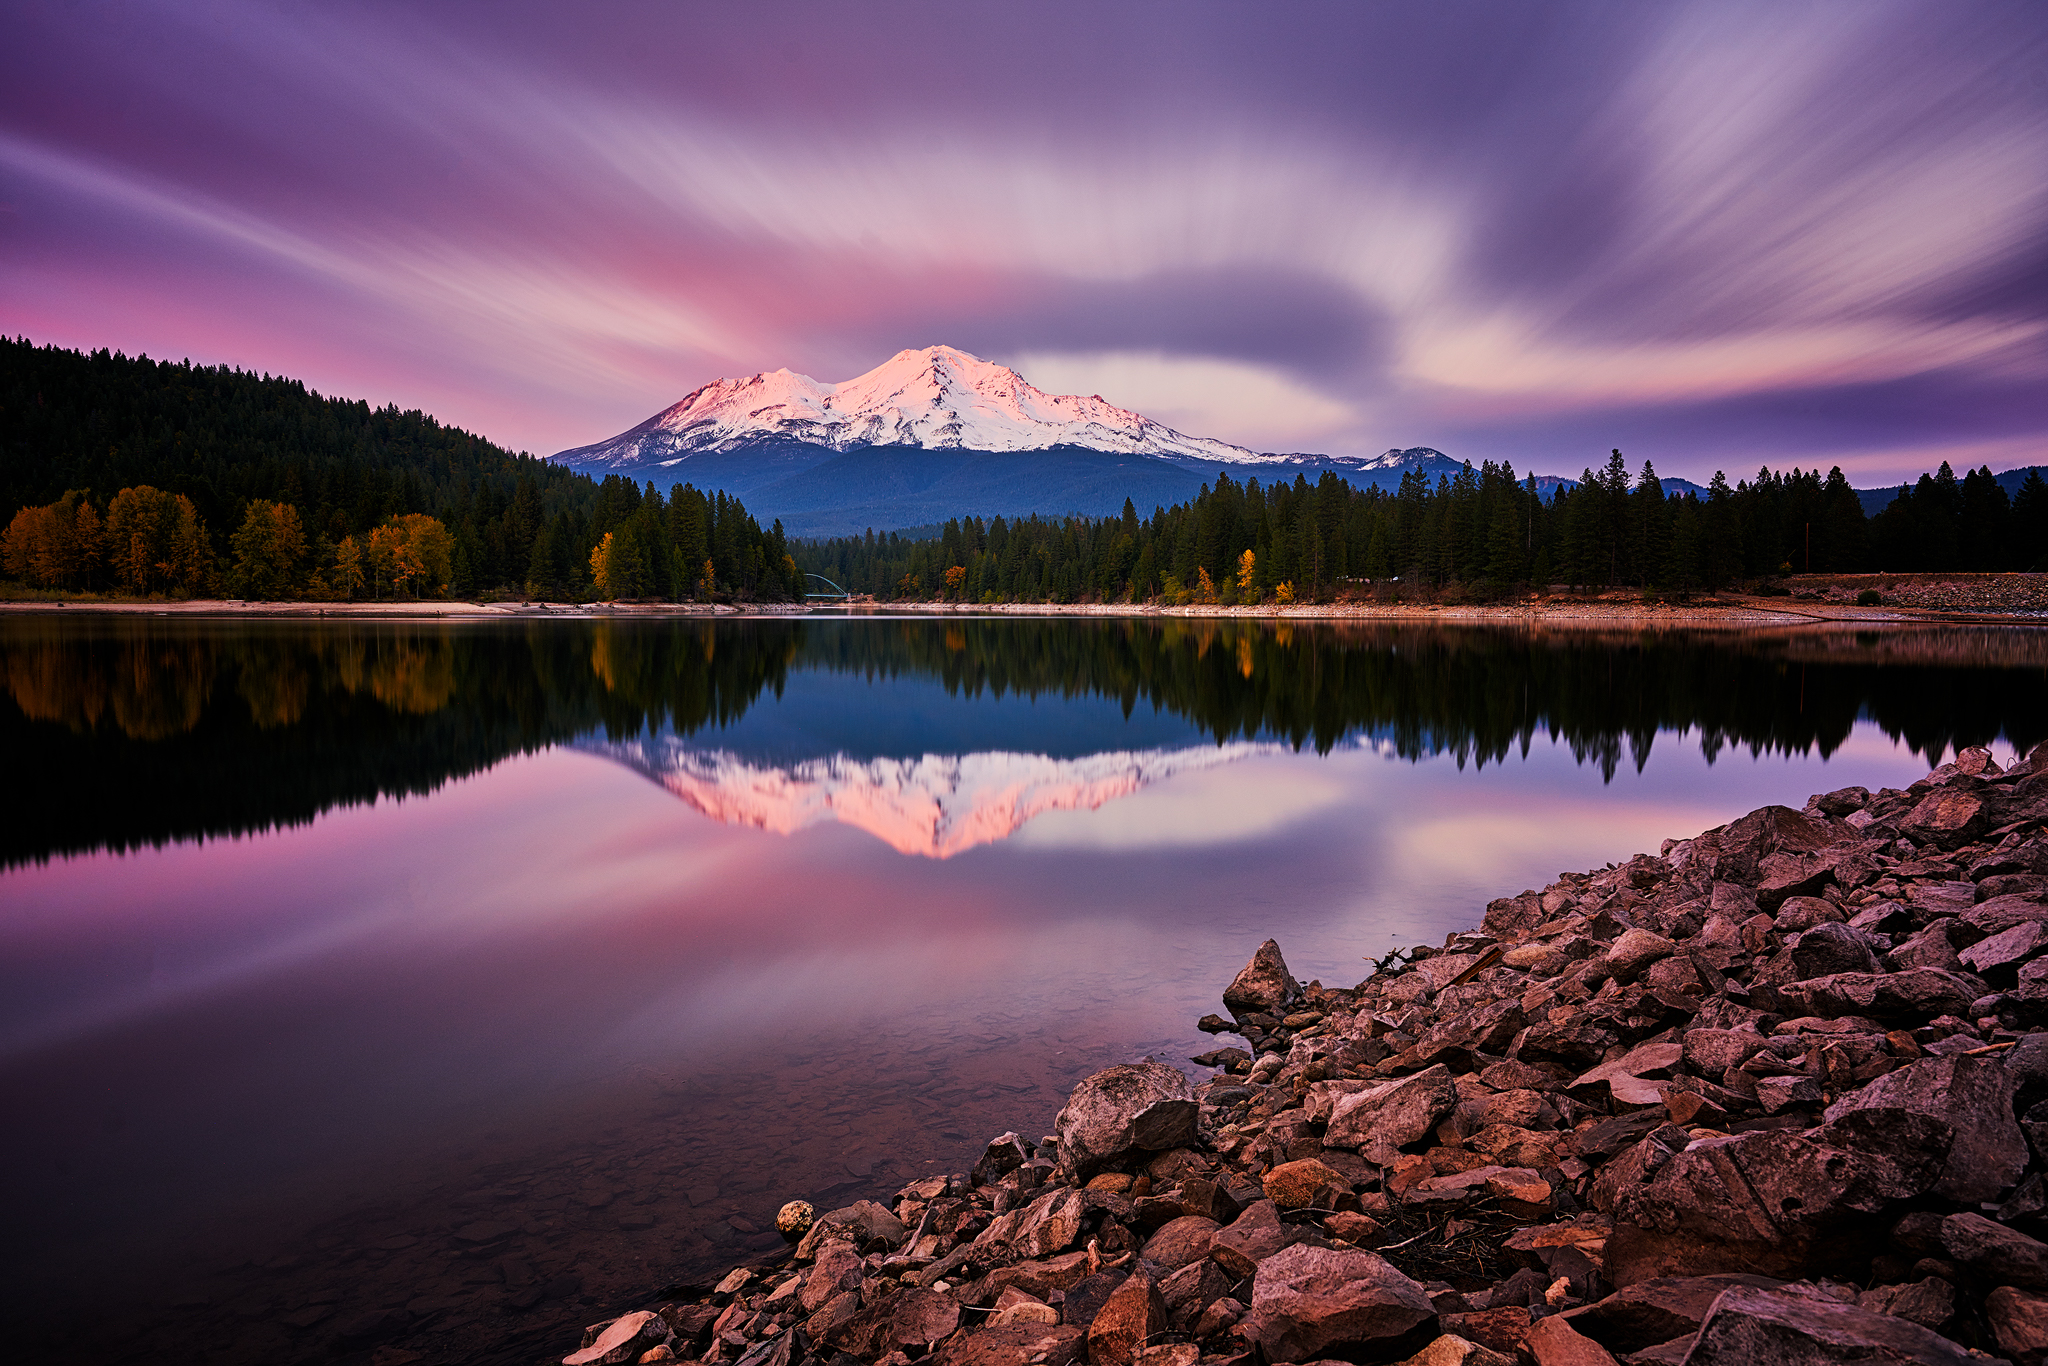 Mount Shasta as seen from Lake Siskiyou